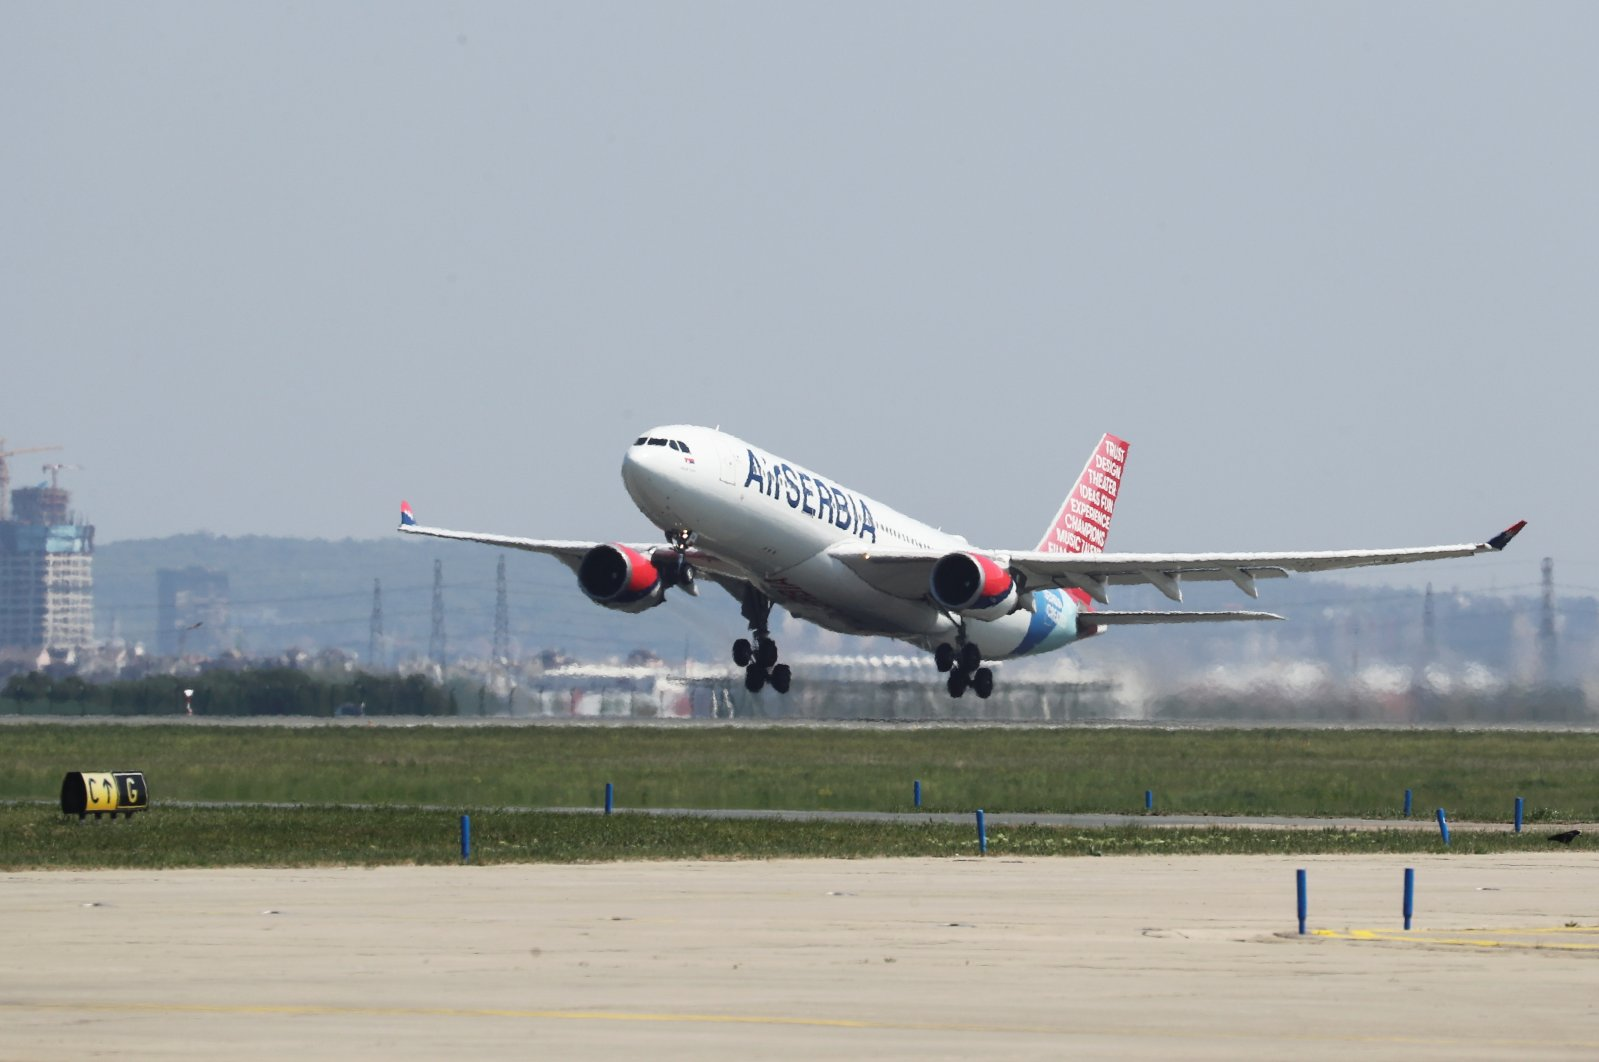 An Air Serbia plane takes off from the Nikola Tesla Airport in Belgrade, Serbia, April 25, 2020. (Reuters Photo)